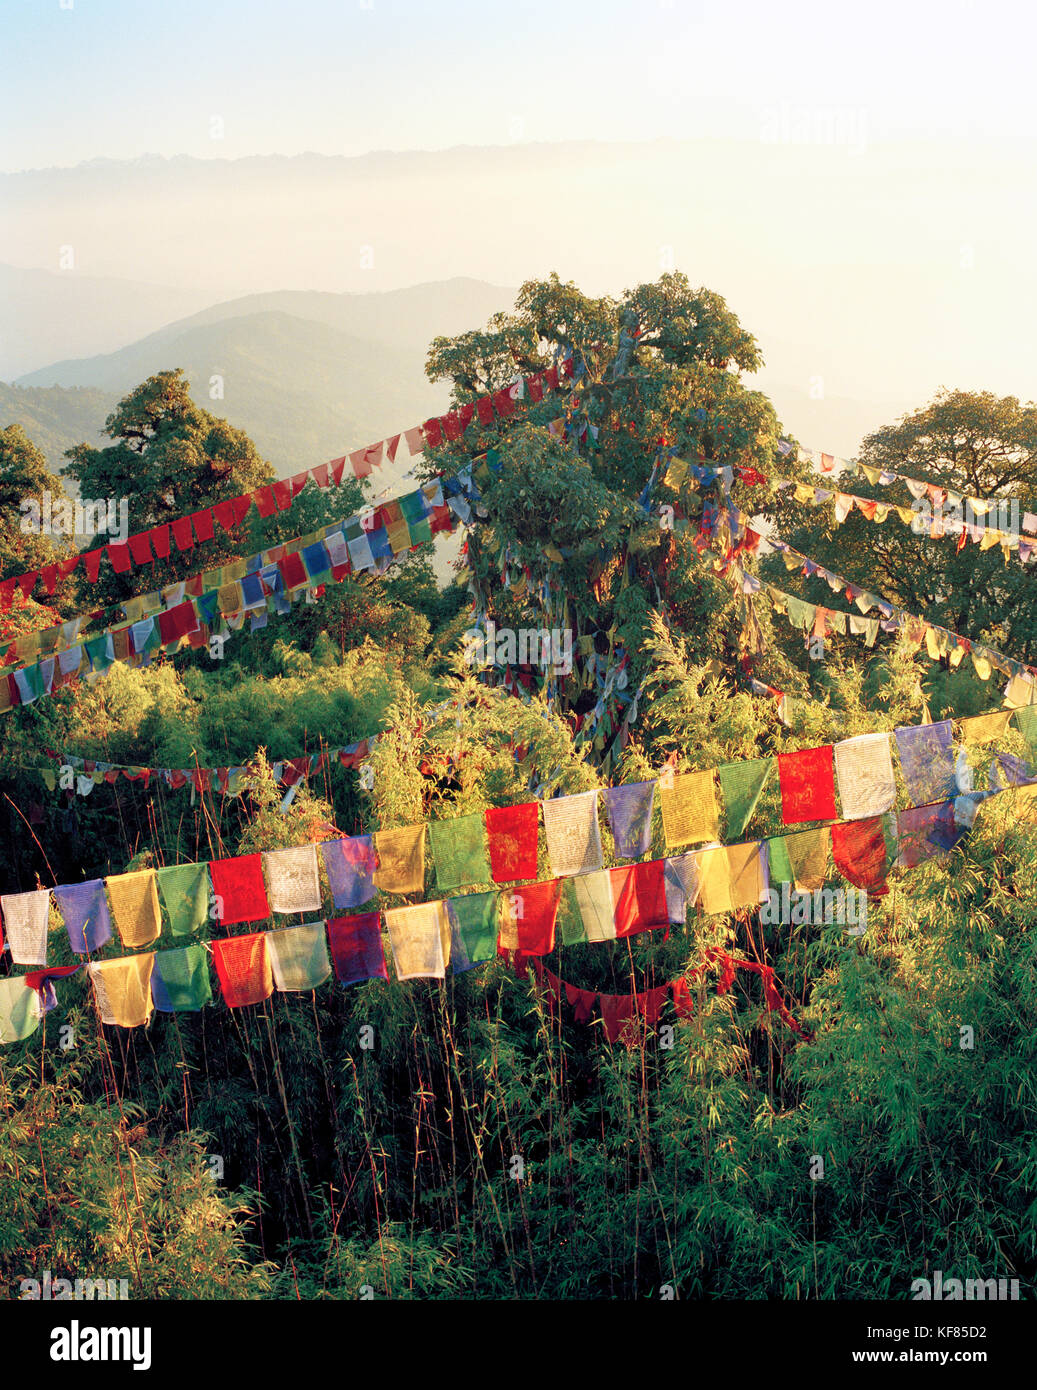 INDIA, West Bengal, colorful prayer flags hanging over trees, Tiger Hill - Stock Image